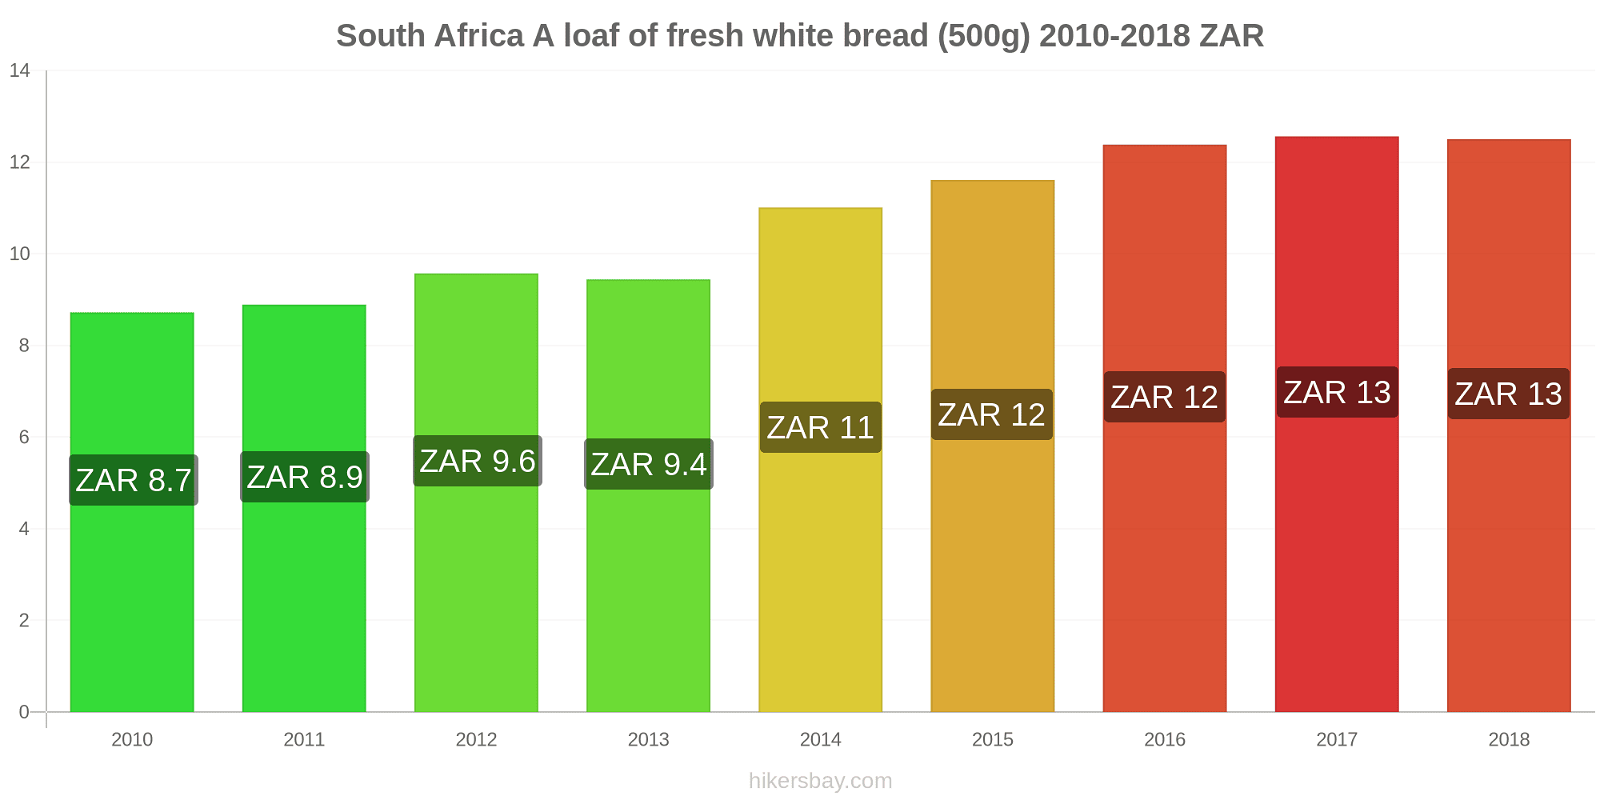 South Africa price changes A loaf of fresh white bread (500g) hikersbay.com